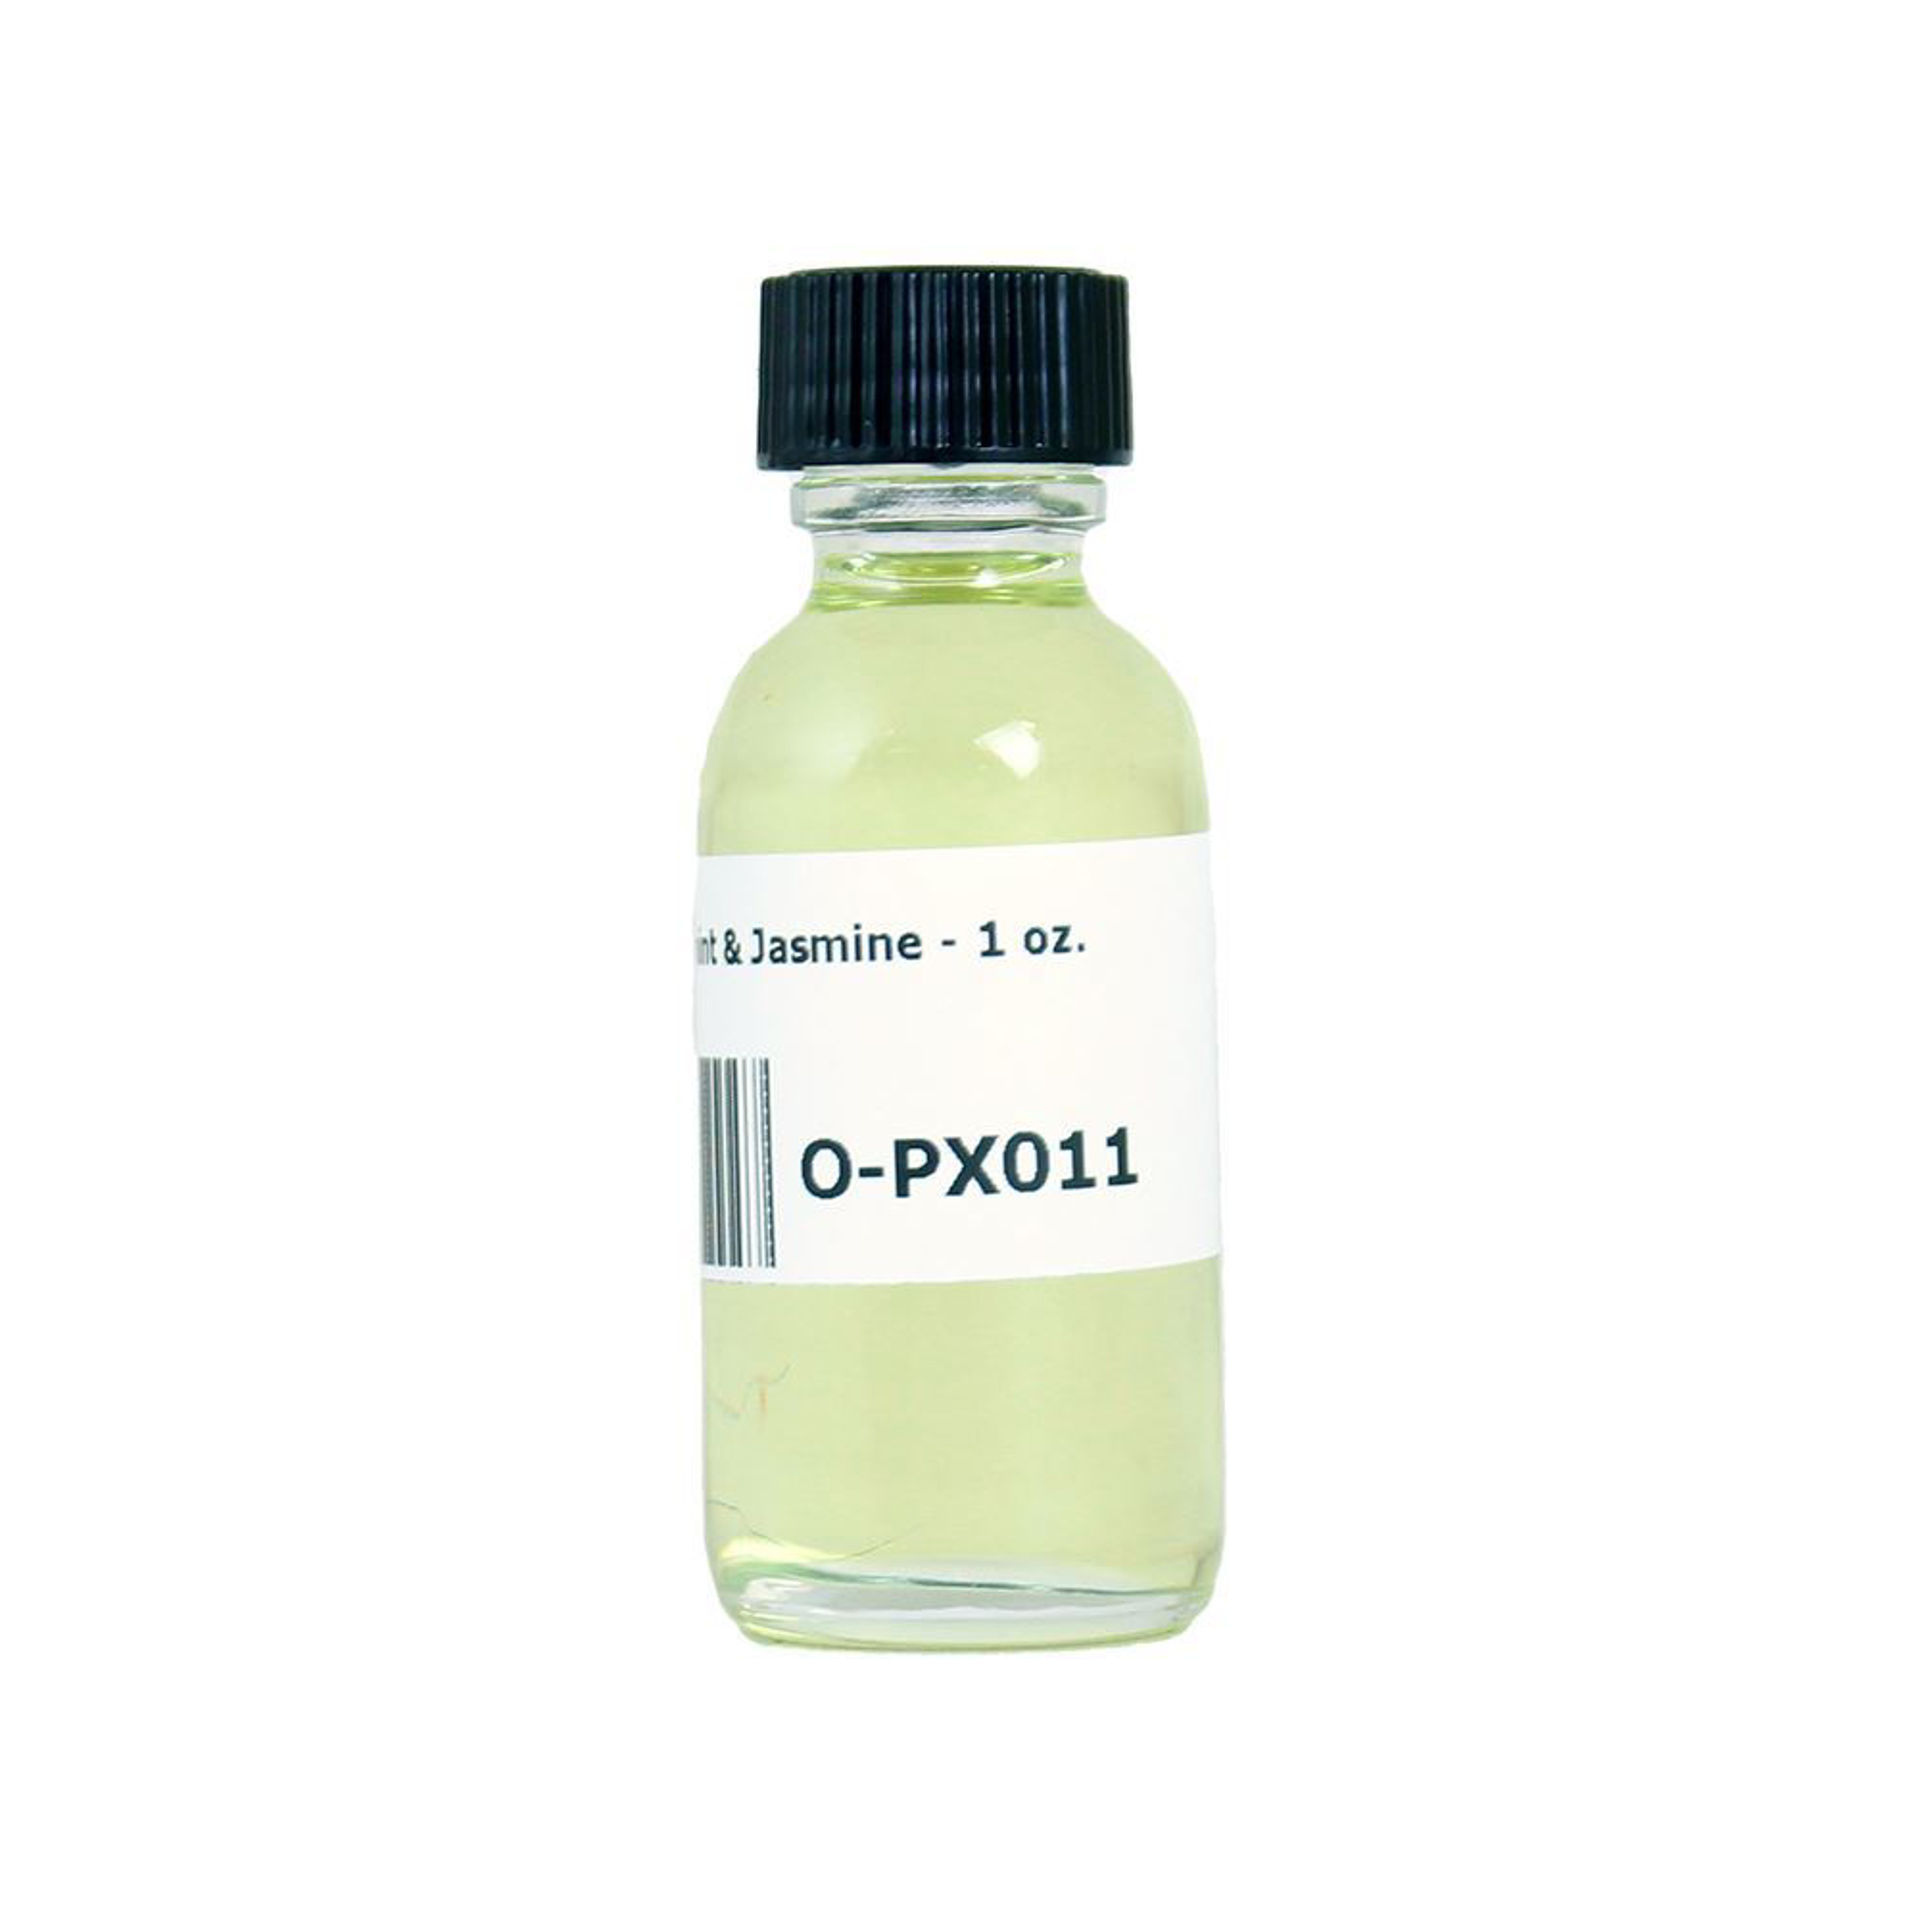 Picture of Peppermint & Jasmine - 1 oz.